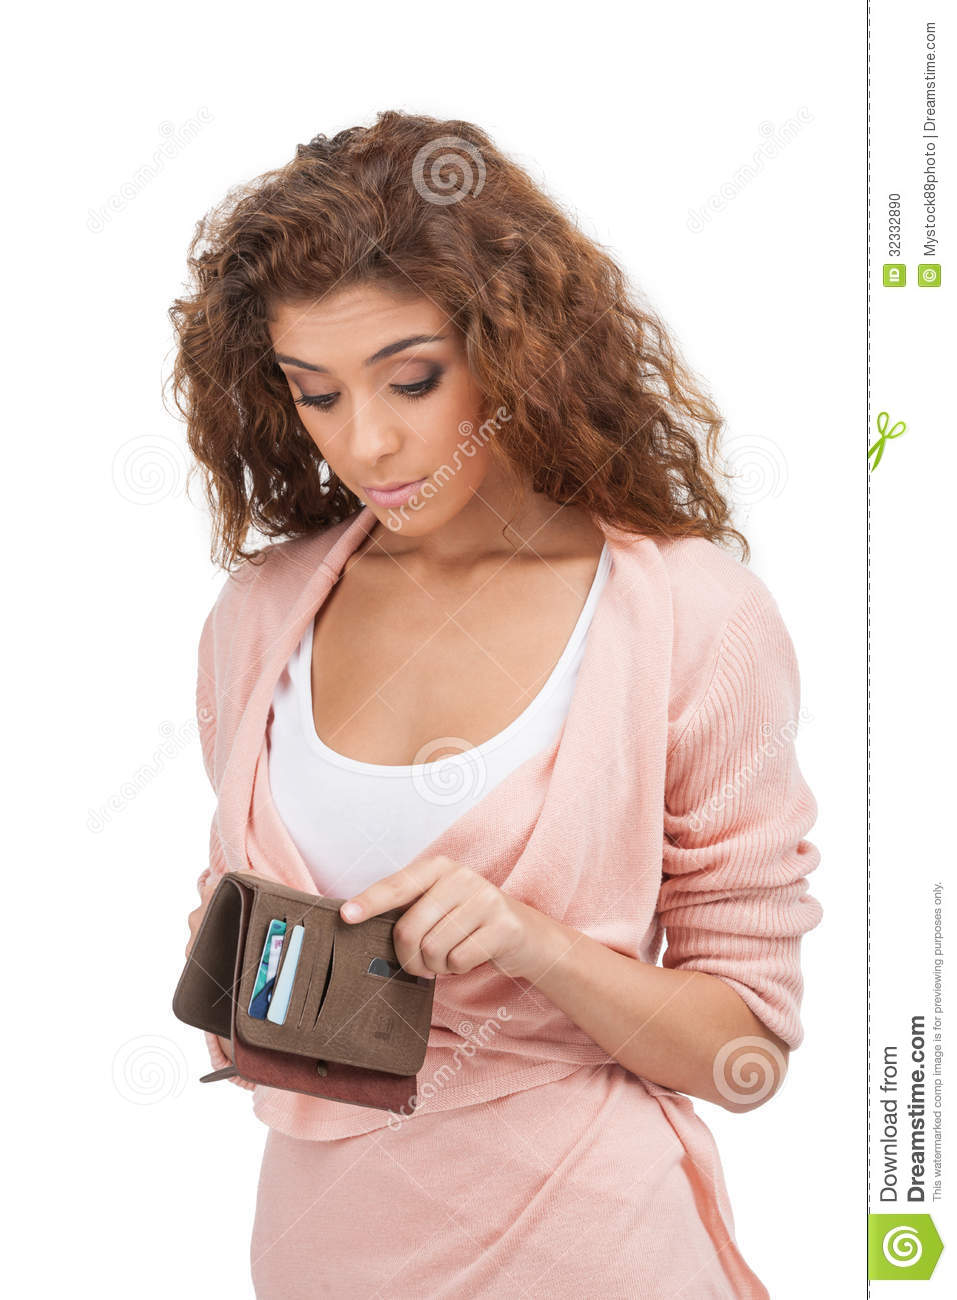 ... Young Women Looking At Her Empty Purse Stock Photo - Image: 32332890